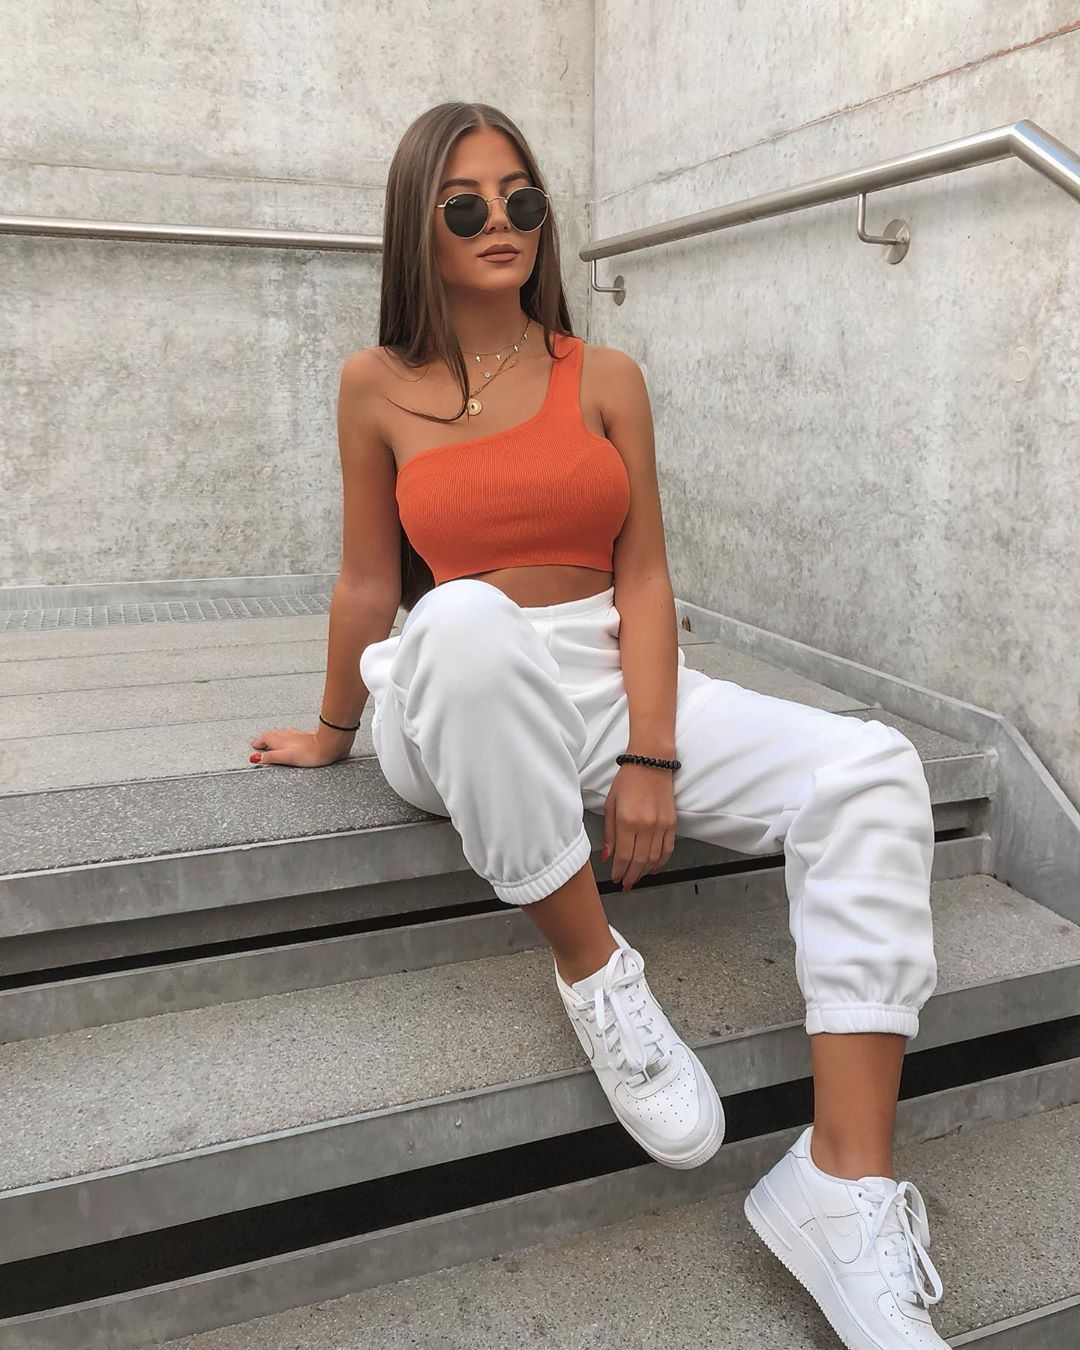 """Photo of CHRISTINA ALEXIA on Instagram: """"Ad / Ad Comfy🤪🍊 @rebelliousfashion (dc: CHRISTINA) (linked in my story) #Rebelgal"""""""